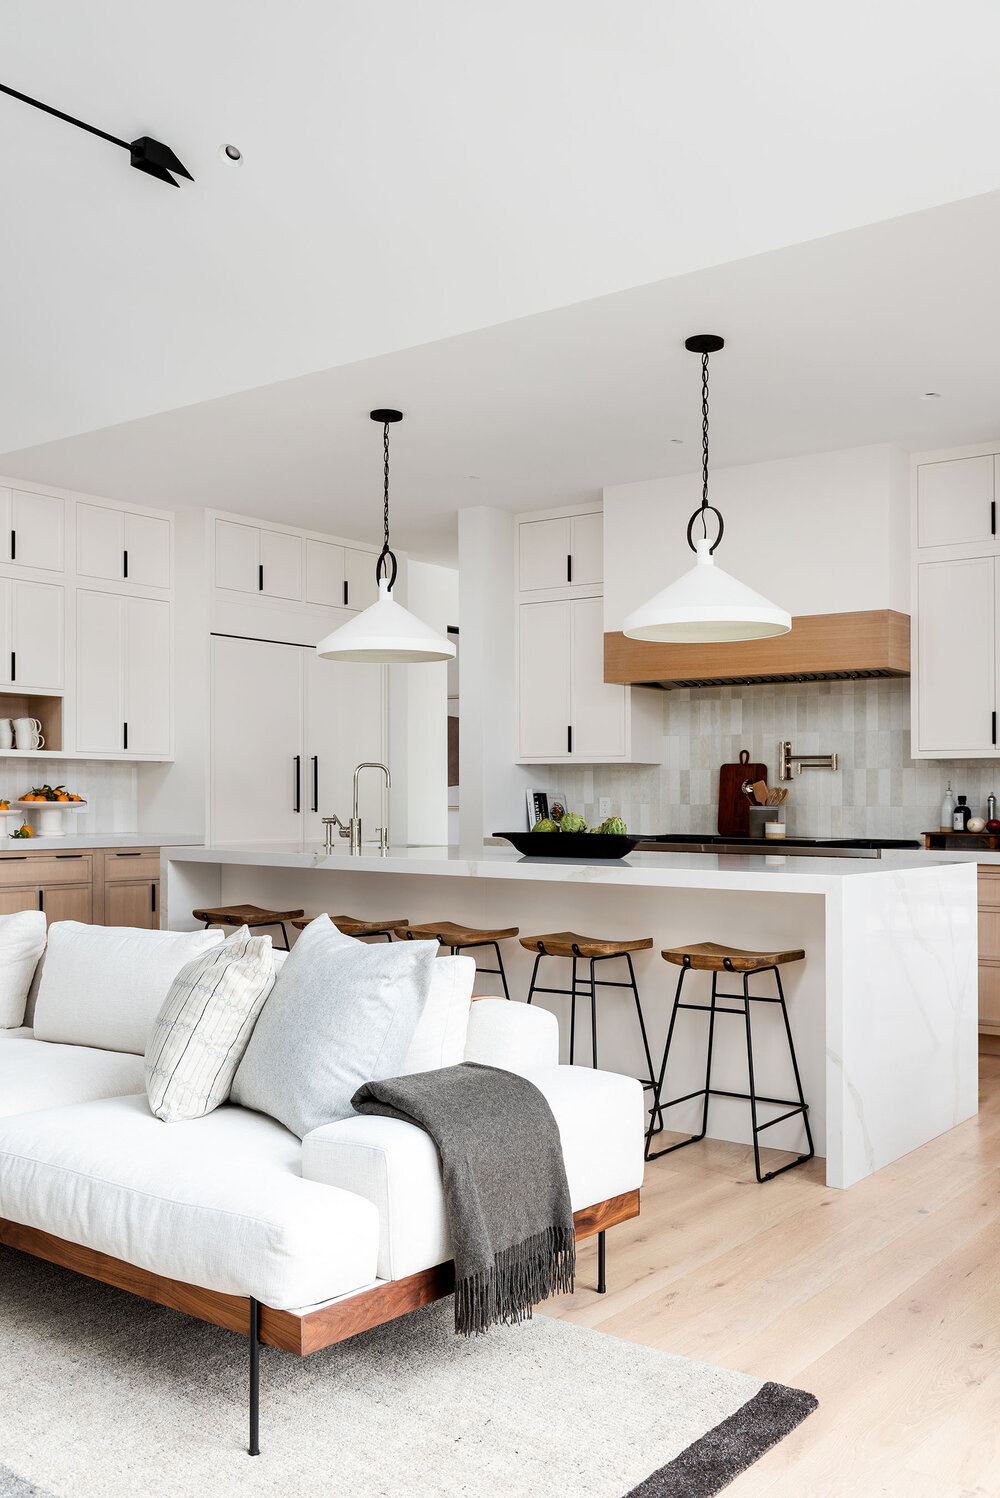 Mixing Styles In Your Home: Our Tips